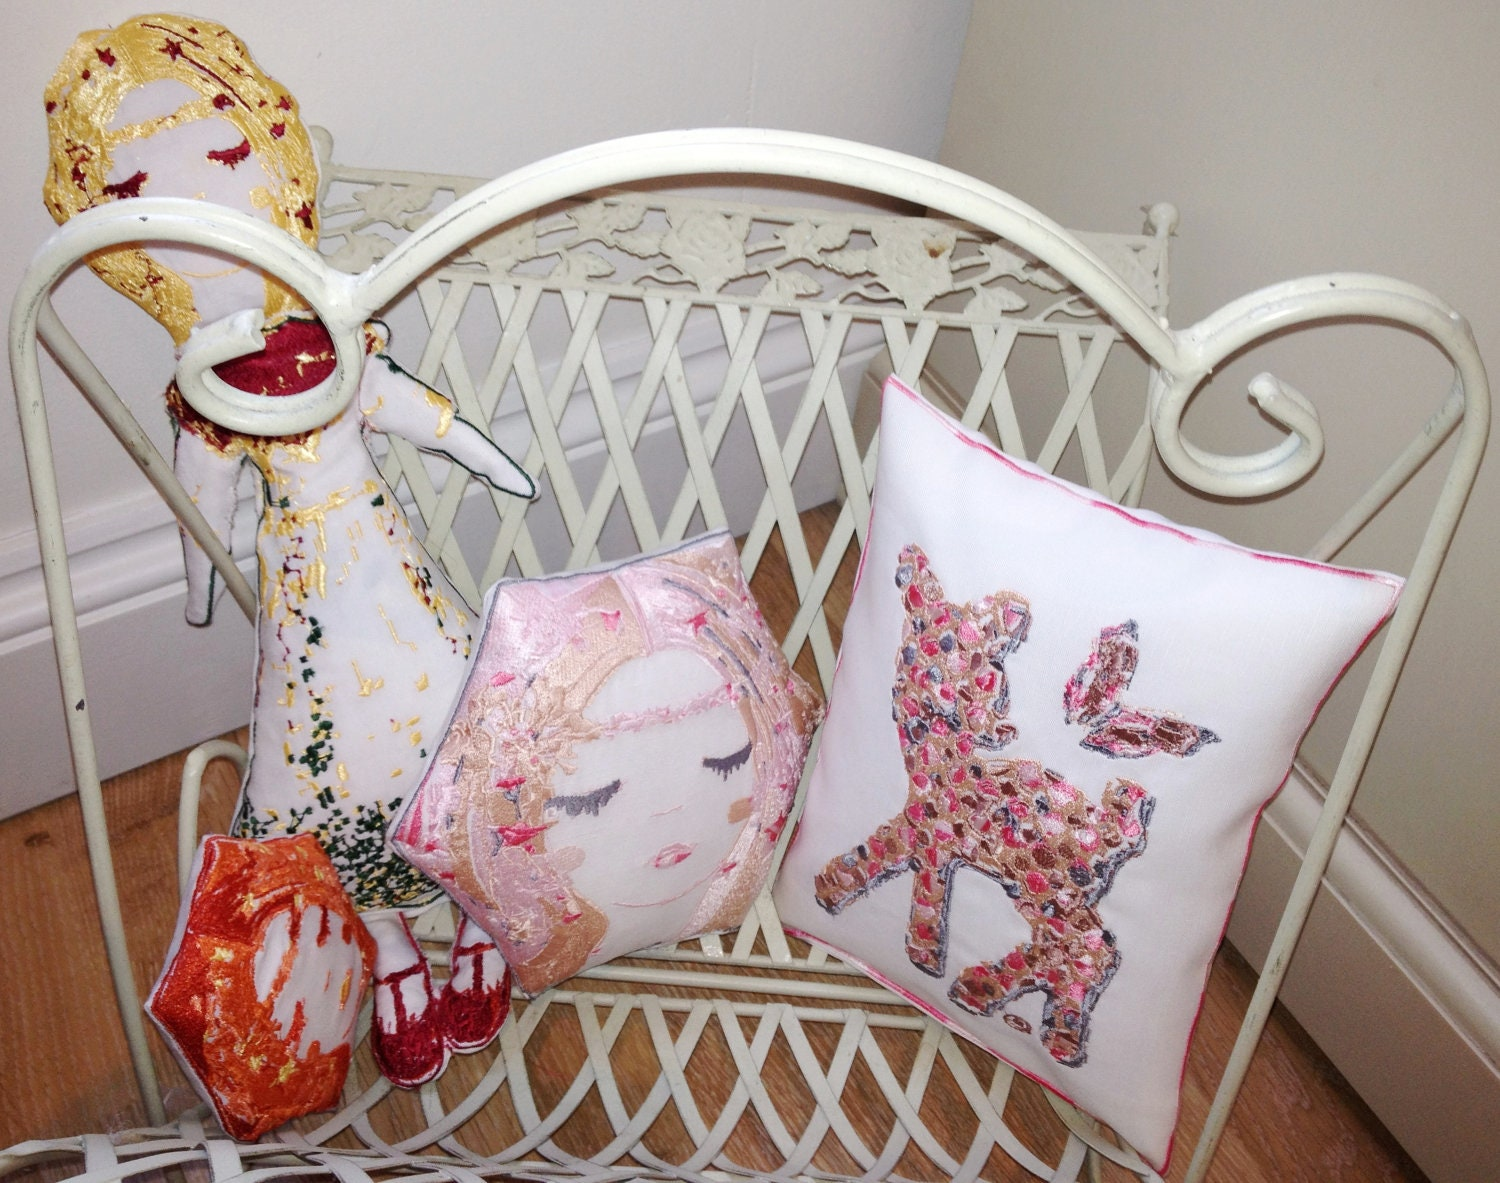 Deanna the Deer and Buttercup the Butterfly -Artistic Textured Embroidery - Throw Cushion